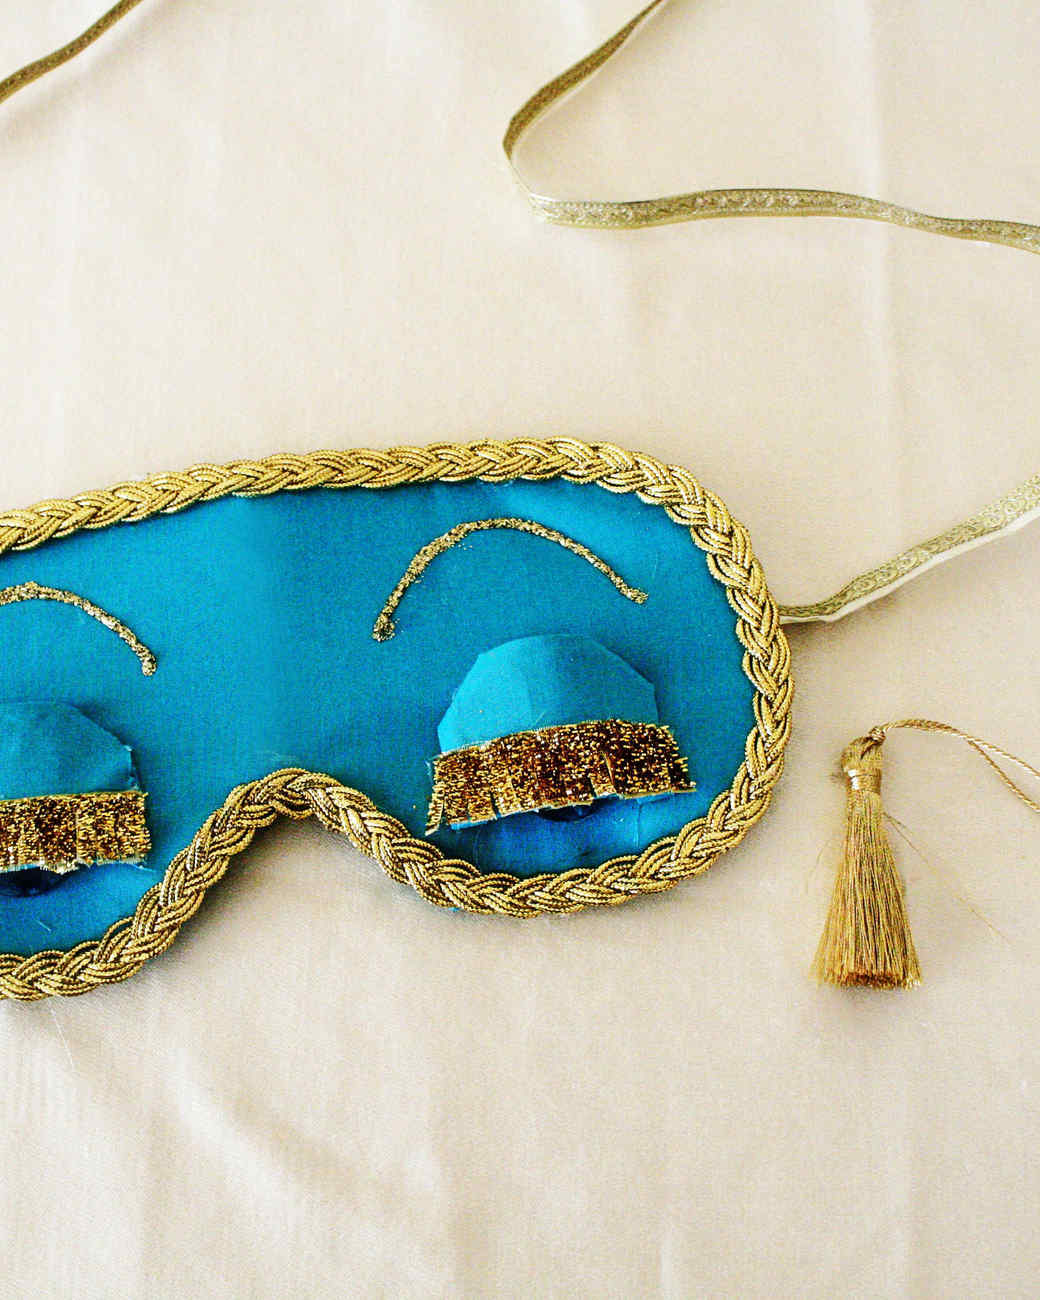 chelsey-heidorn-holly-sleep-mask.jpg